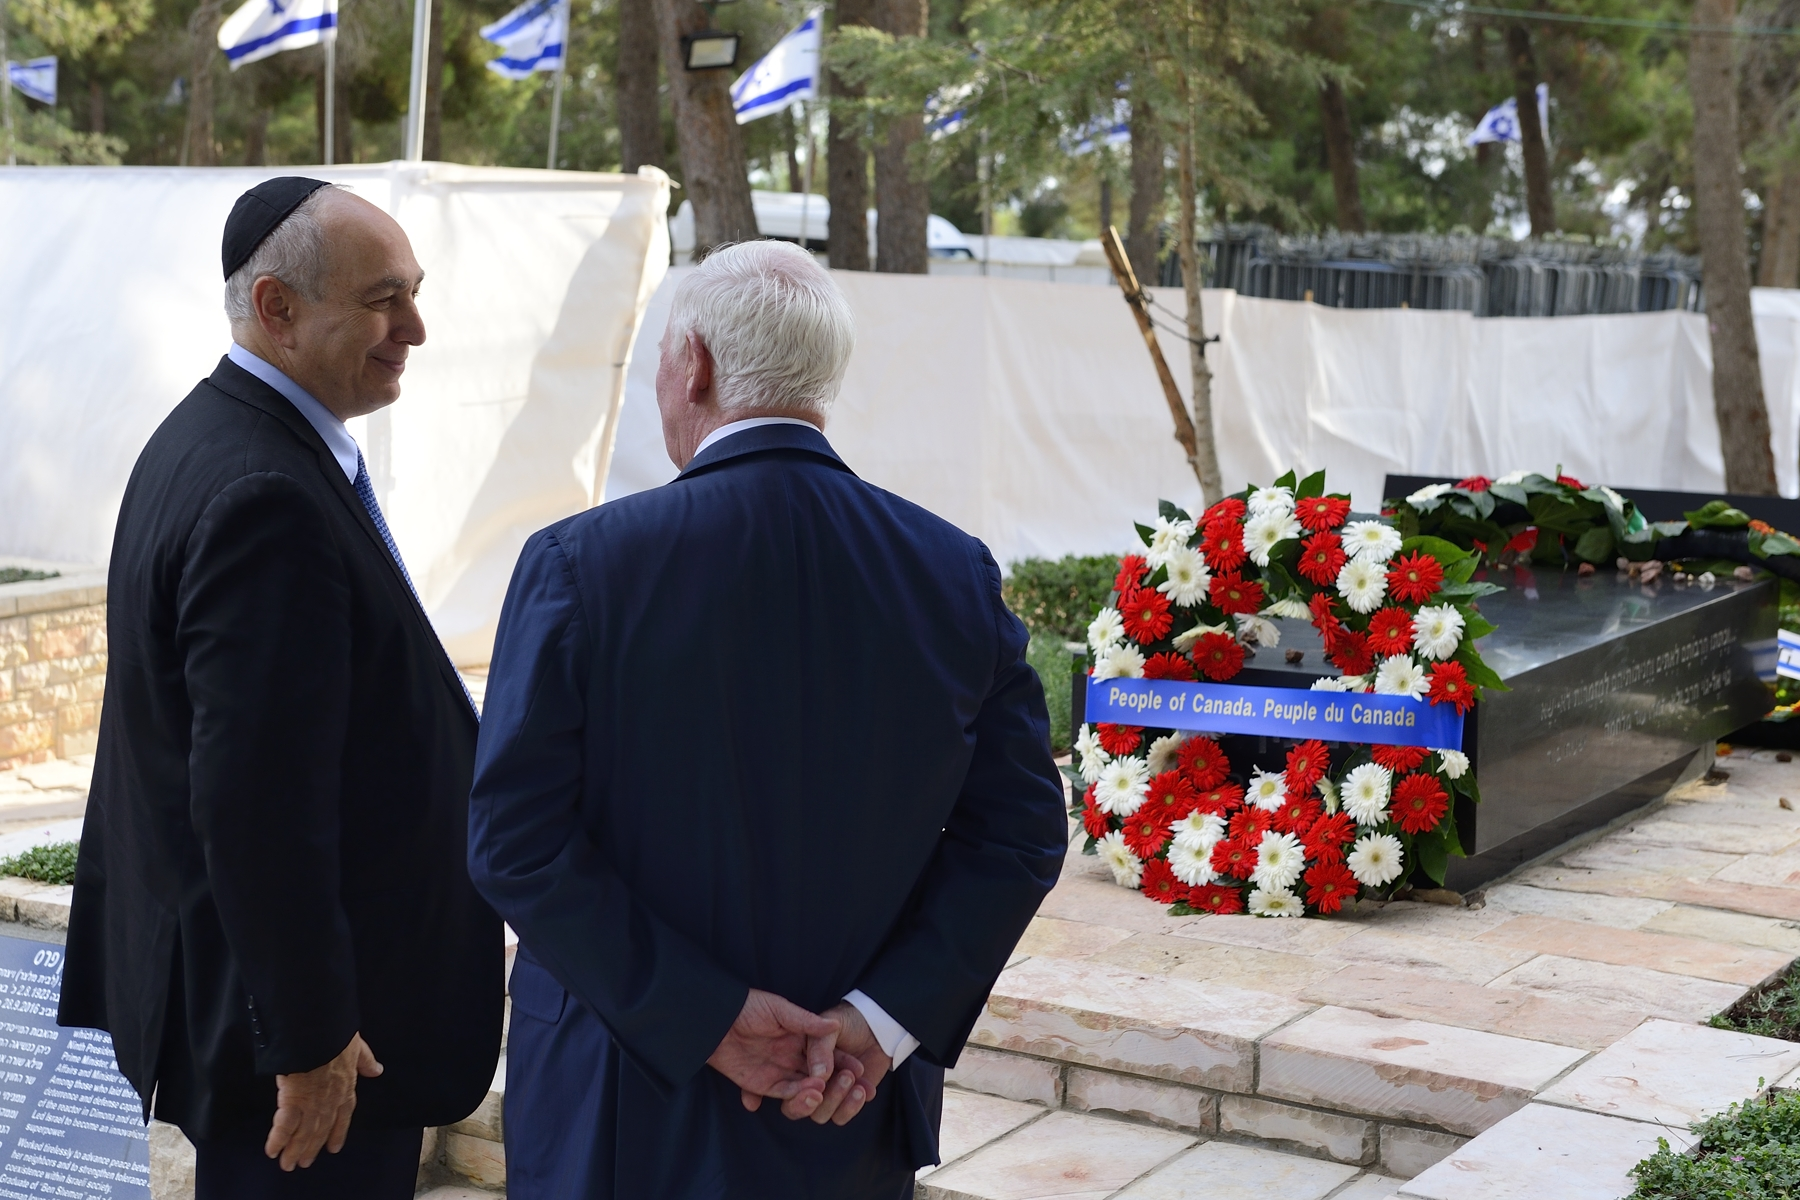 The Governor General and Chemi Peres, son of Shimon Peres, paused for reflection in front of the tomb of Shimon Peres.